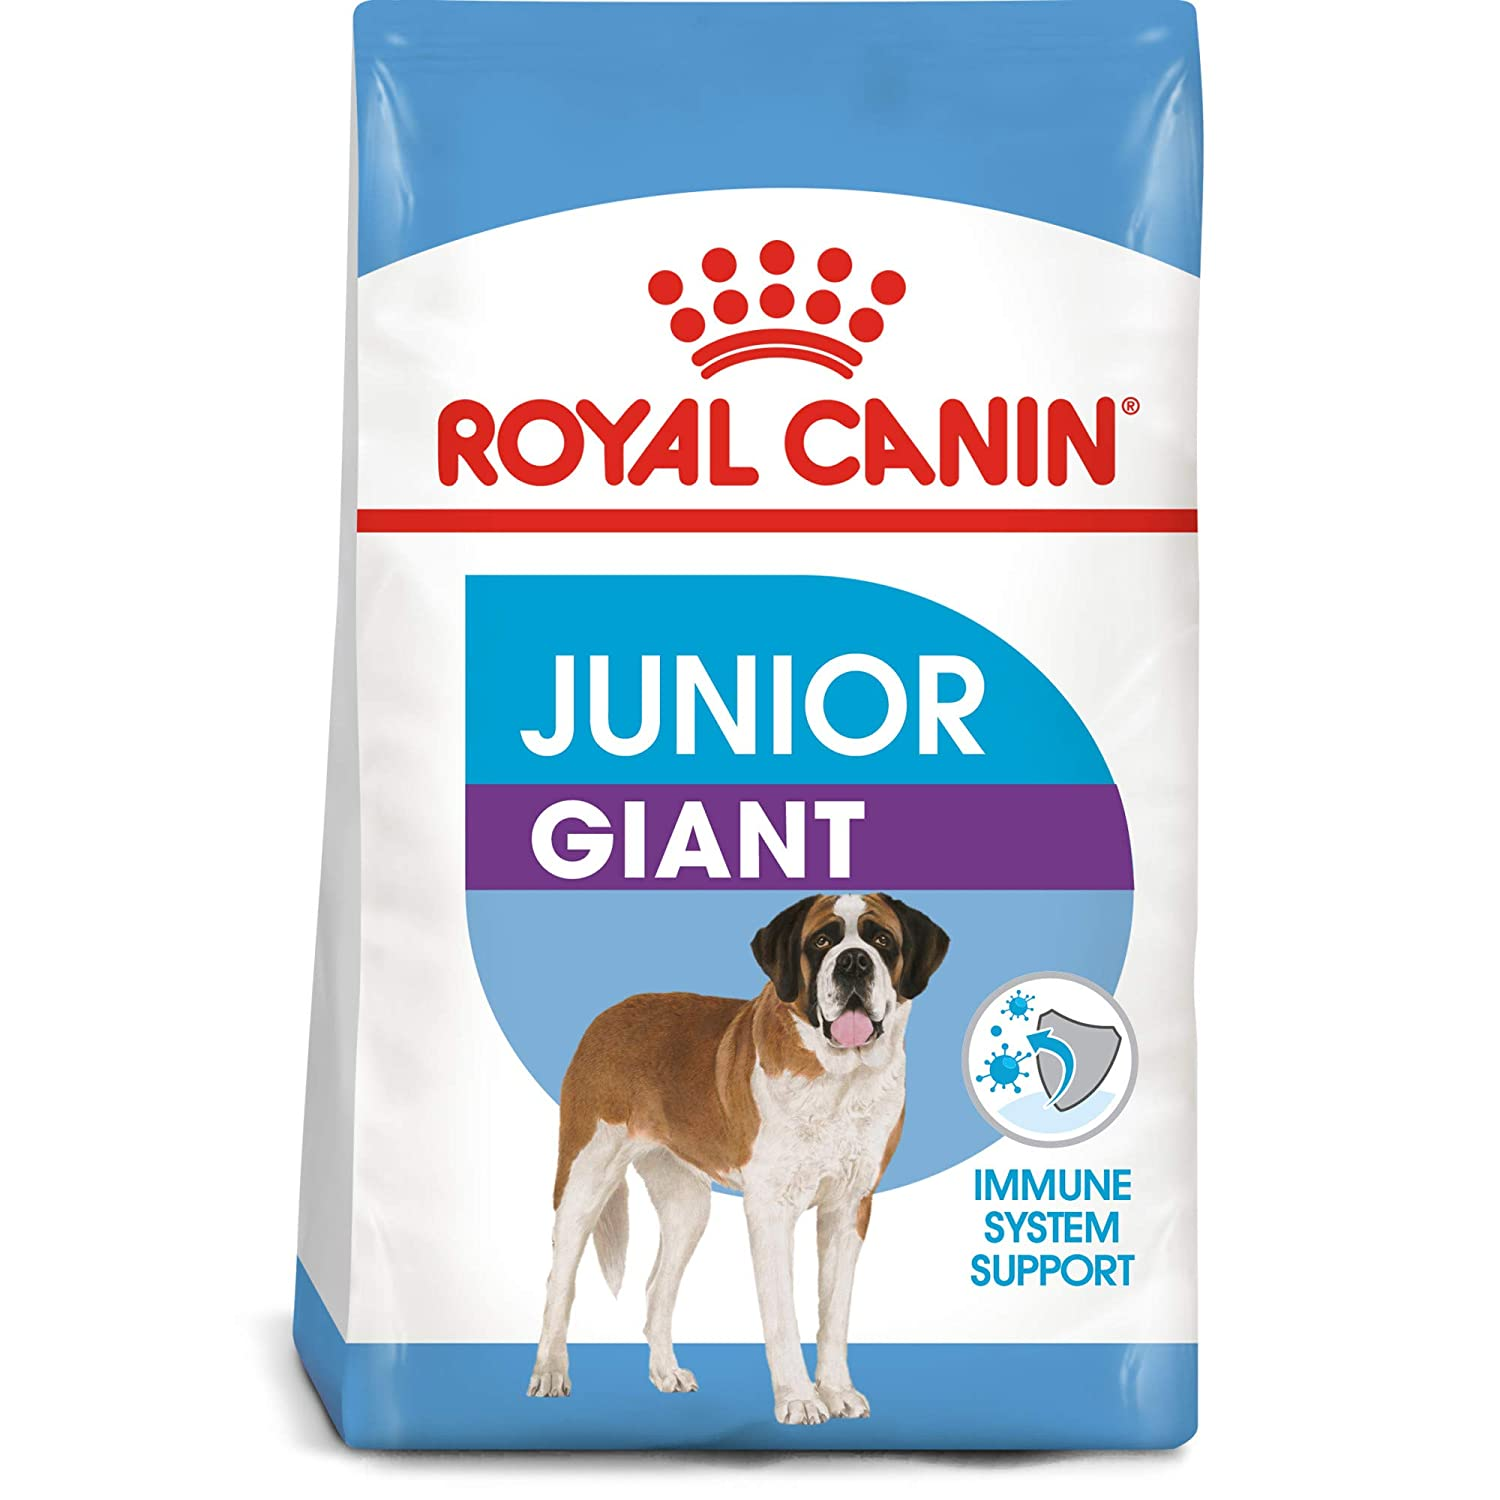 4.Royal Canin Giant Junior Dry Dog Food